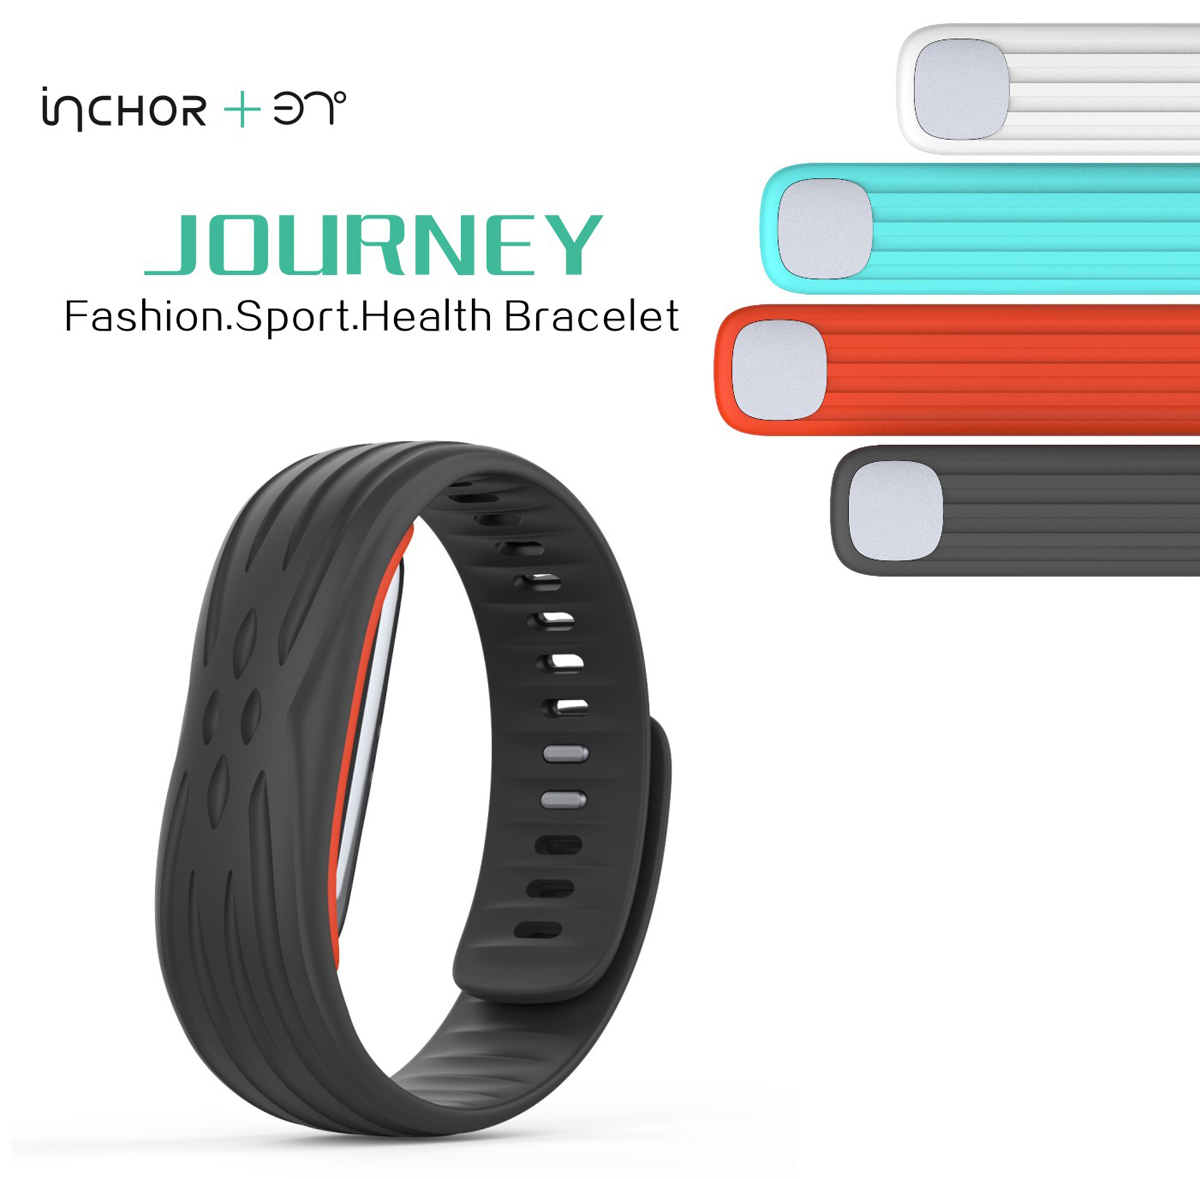 37 Degree Journey Heart Rate Track Smart Watch with USB Plug